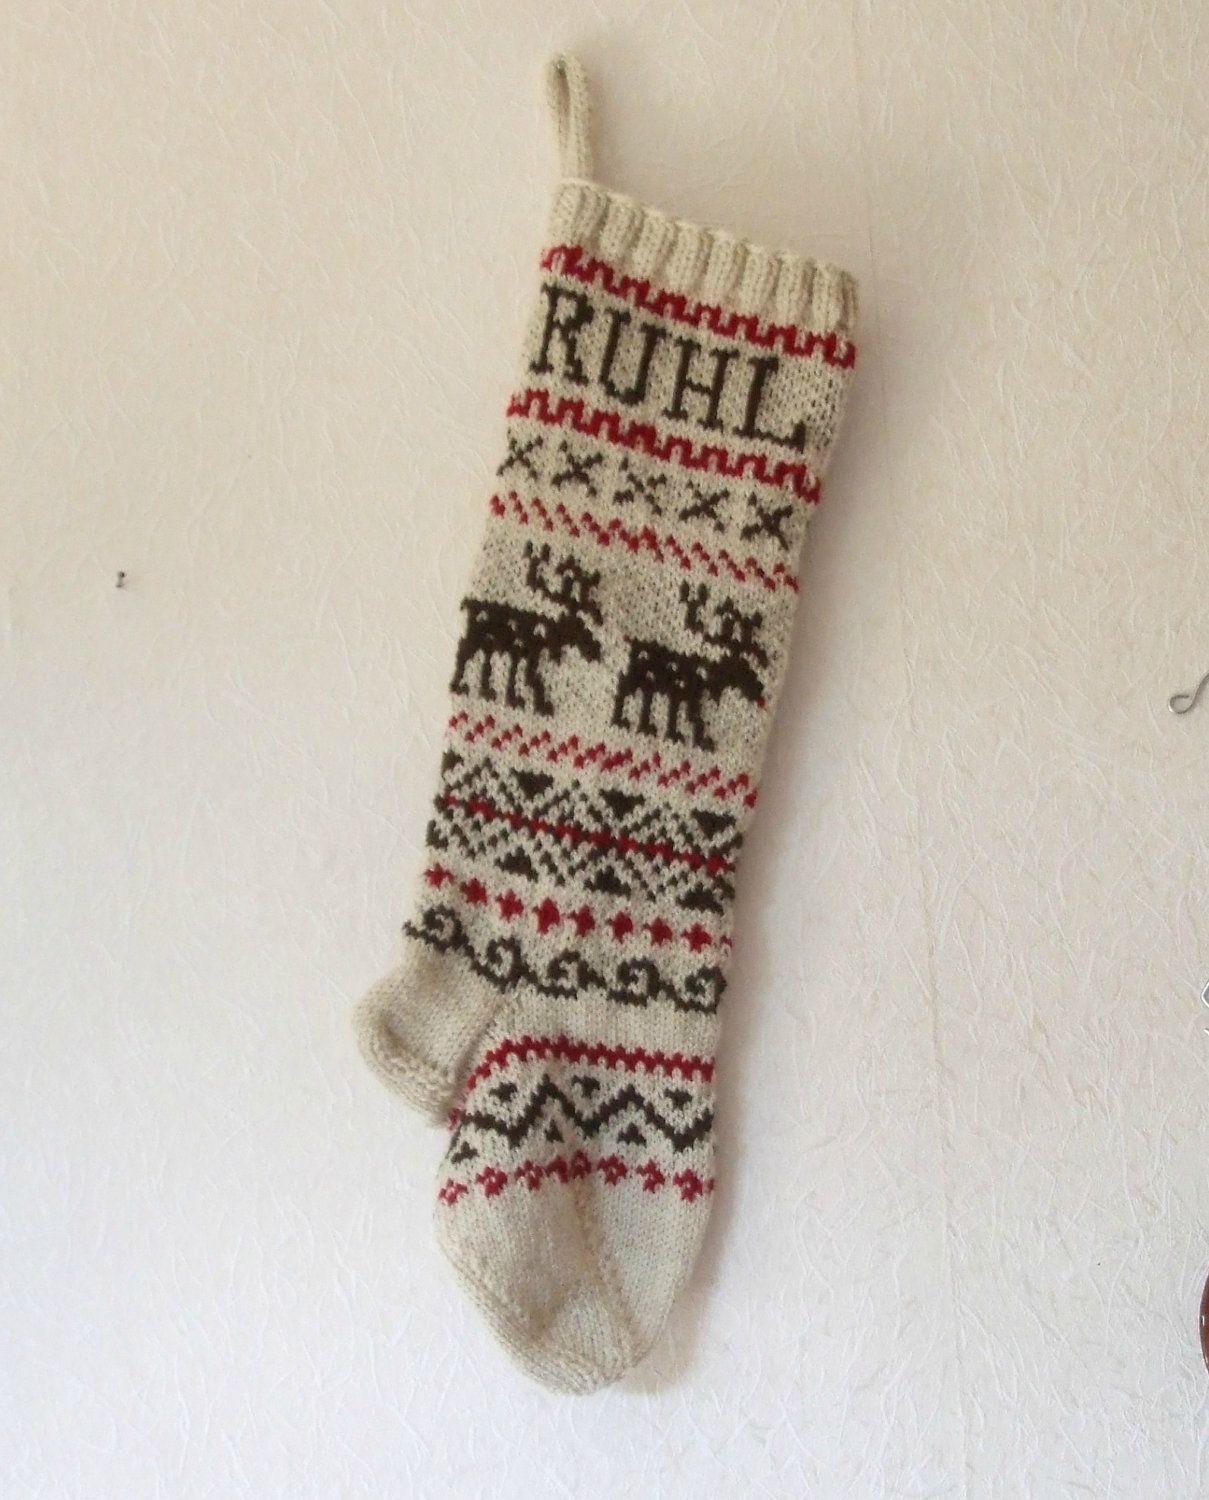 Holiday stocking custom knit personalized reindeer scandinavian holiday stocking custom knit personalized reindeer scandinavian design fair isle knit christmas stocking brown red made to order bankloansurffo Choice Image